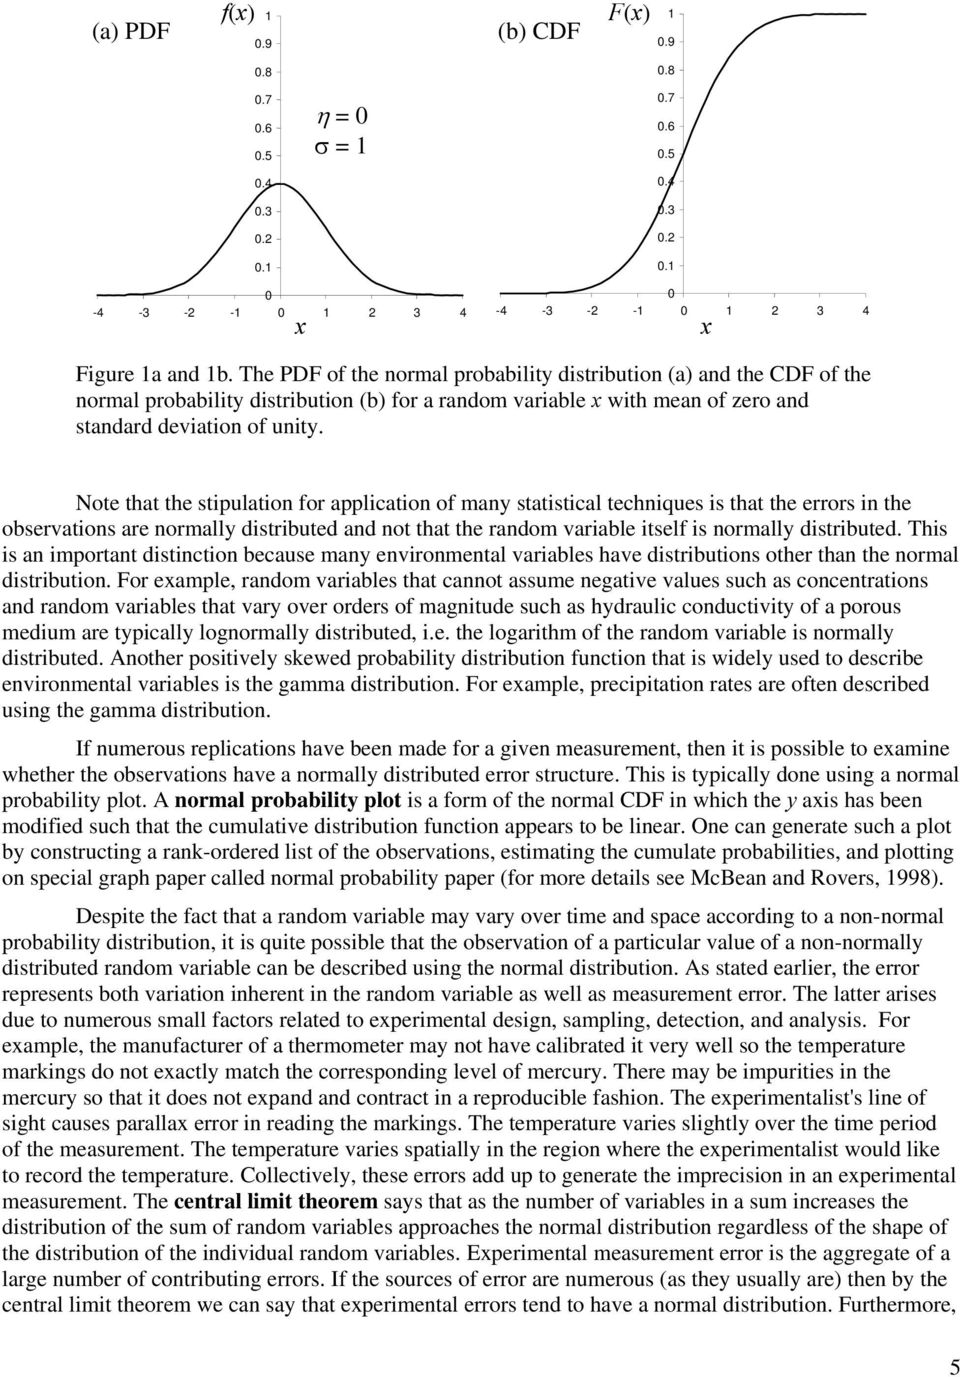 Note that the stipulation for application of many statistical techniques is that the errors in the observations are normally distributed and not that the random variable itself is normally